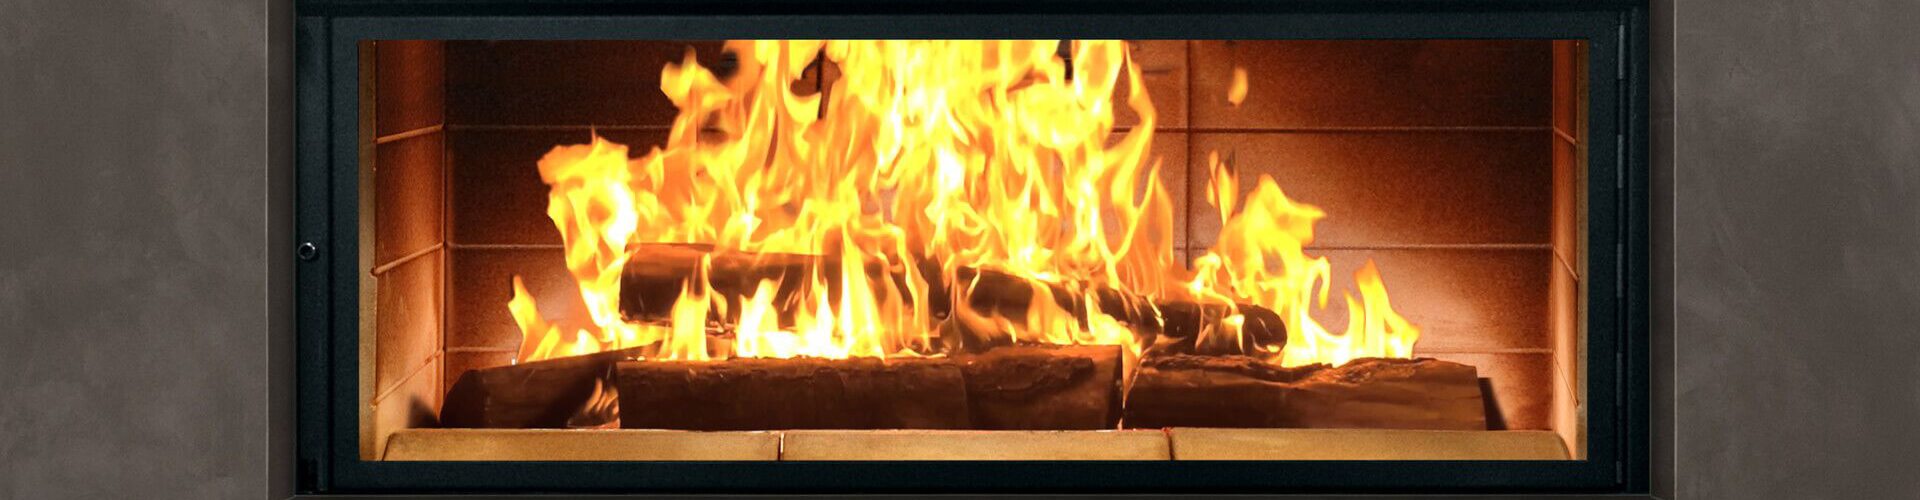 Fireplaces & Stoves  at Nick's Fireplace Outfitters